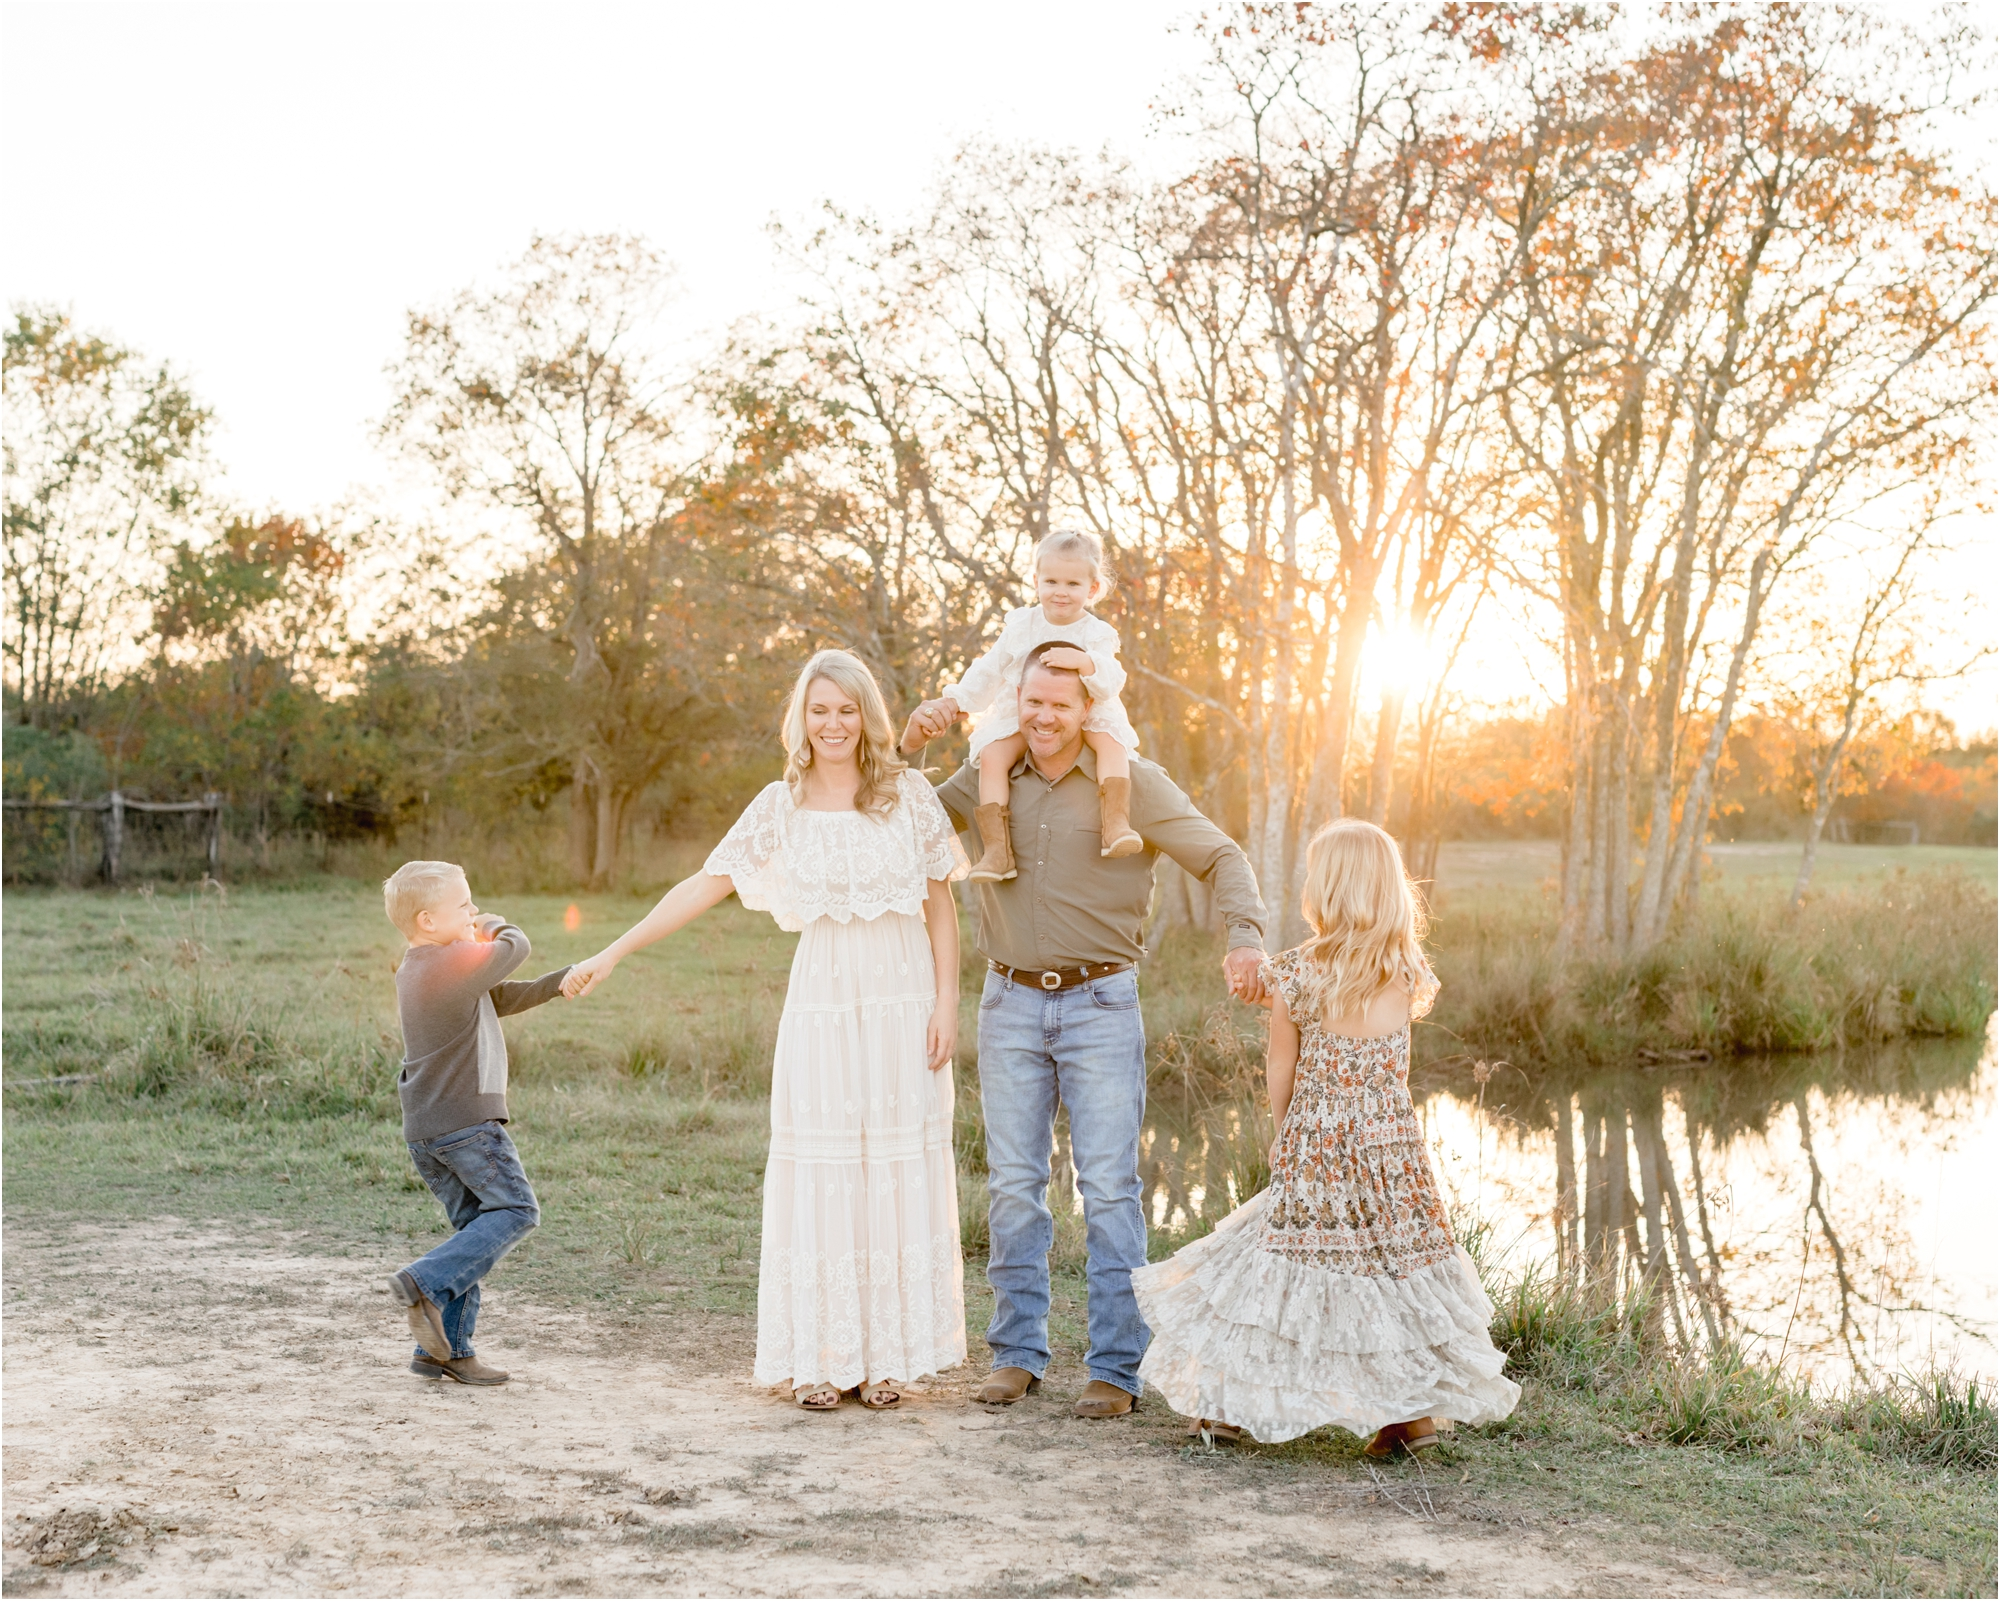 Parents twirling kids in sunset near pond on their property by Katy family photographer, Lifetime of Clicks Photography.